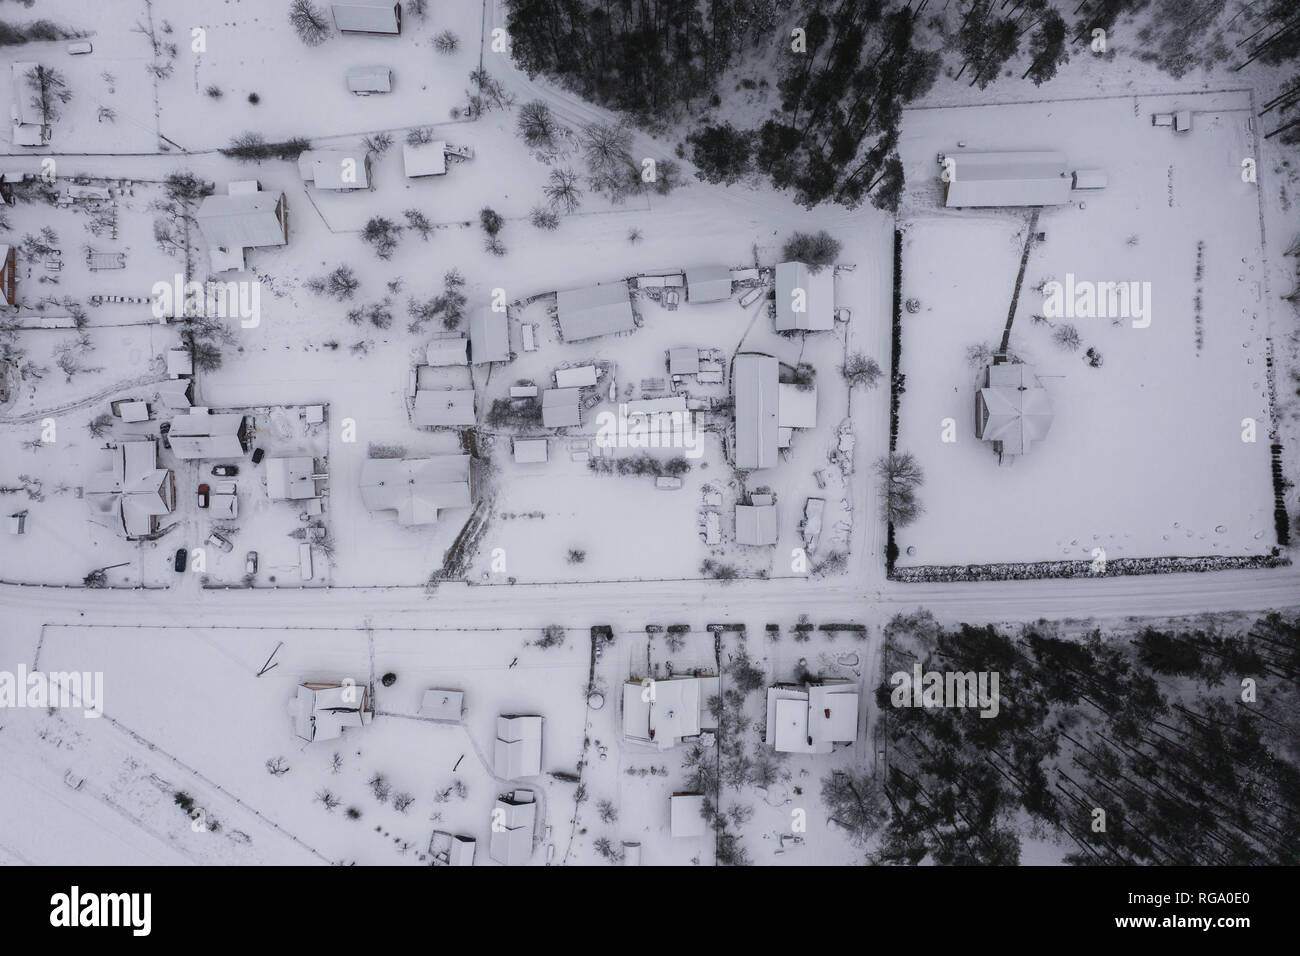 Small rural village from drone point of view during winter - Stock Image